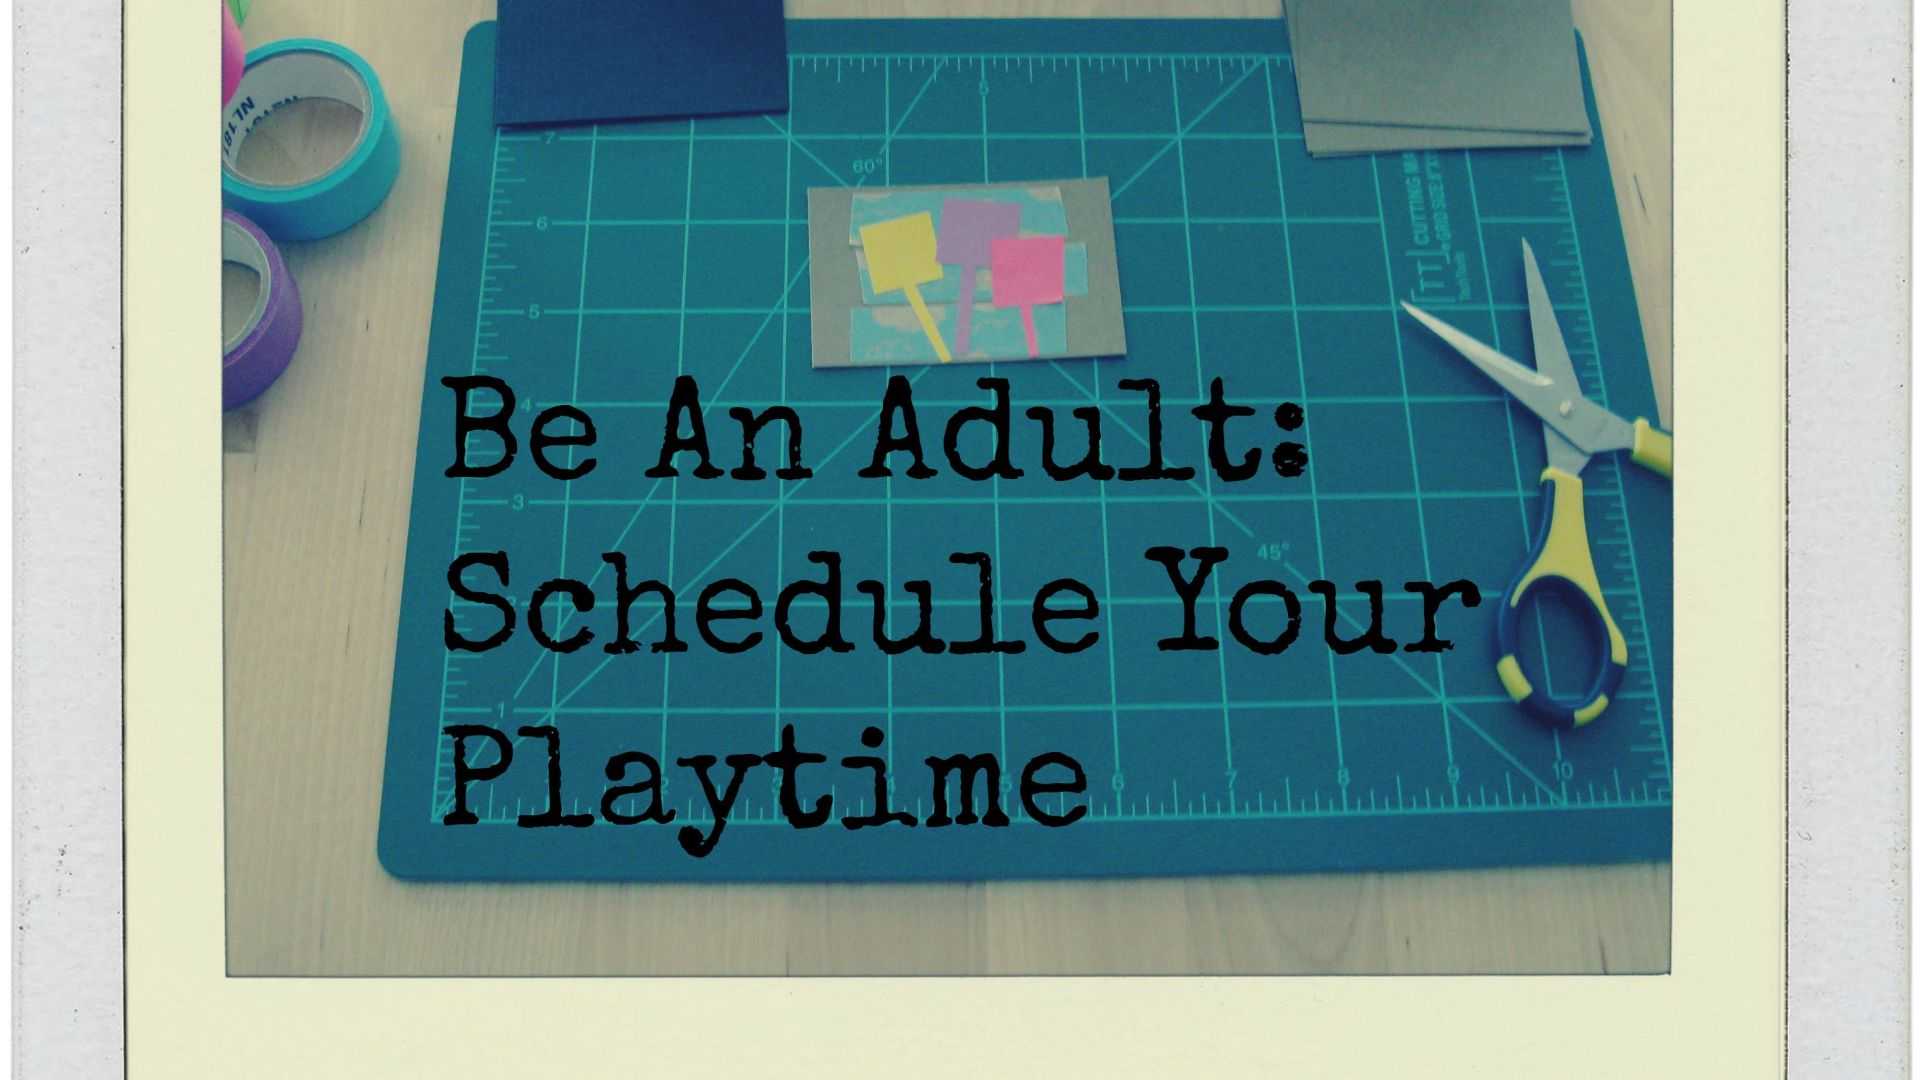 Be An Adult: Schedule Your Playtime